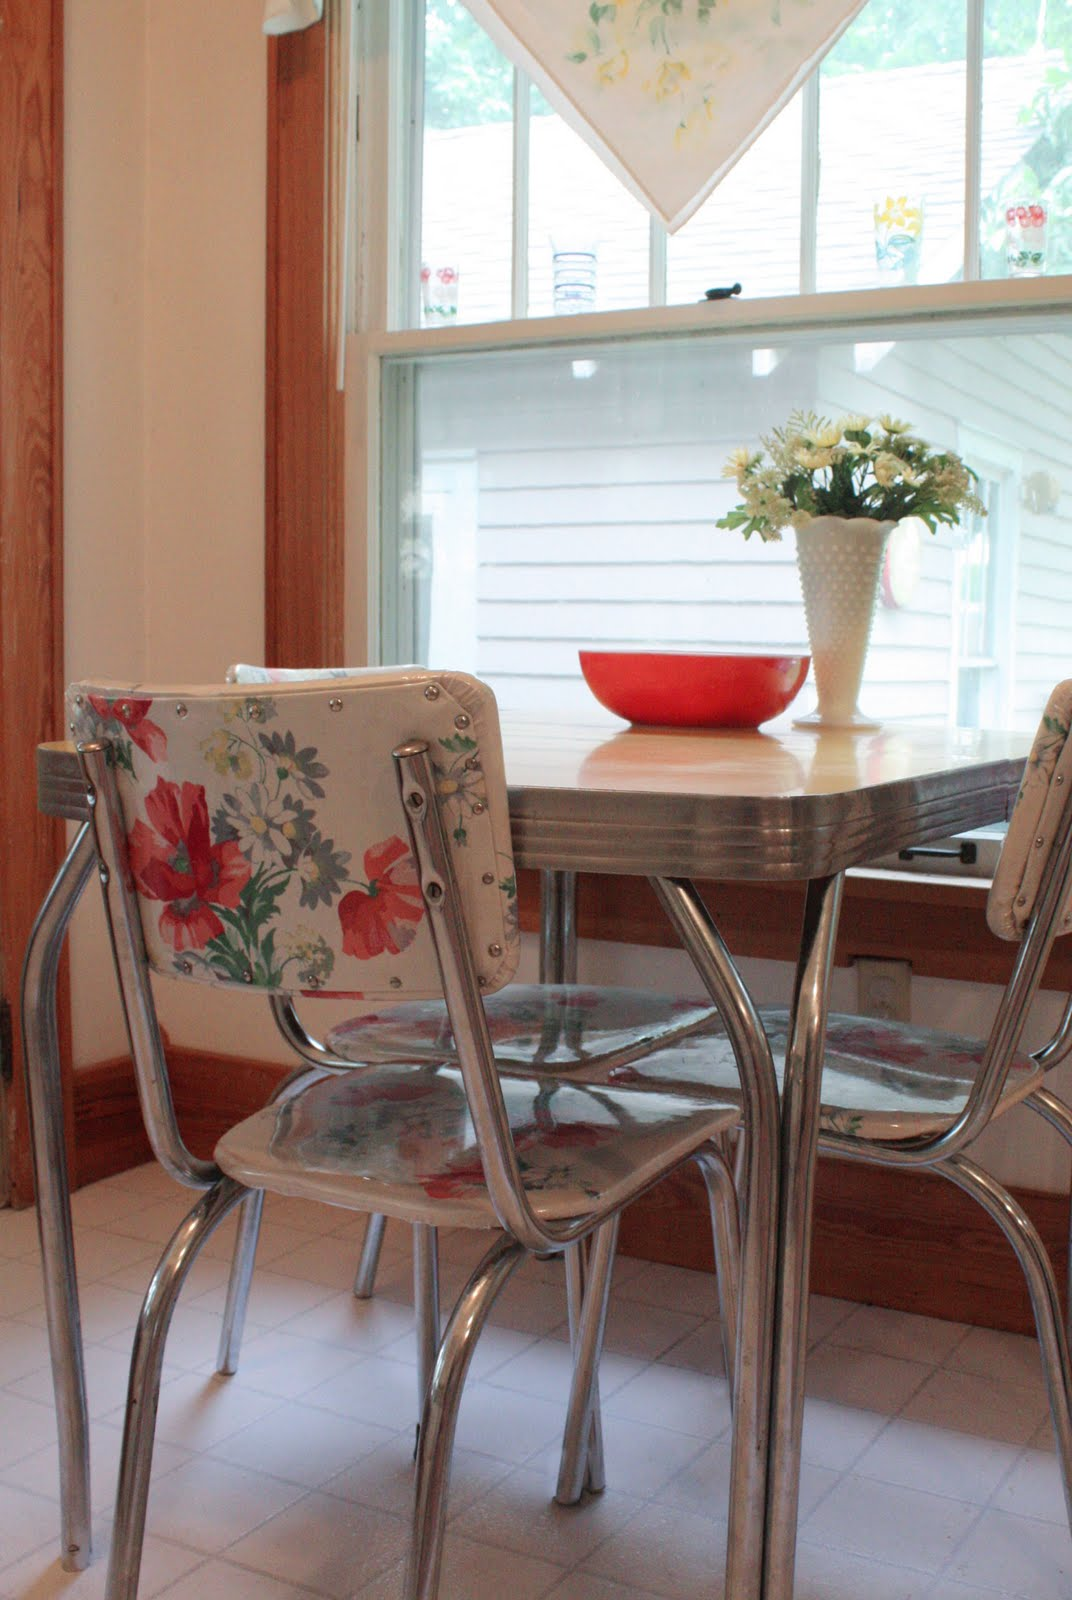 Amy J Delightful Blog Using Vintage Tablecloths Part 2 Everyday Use